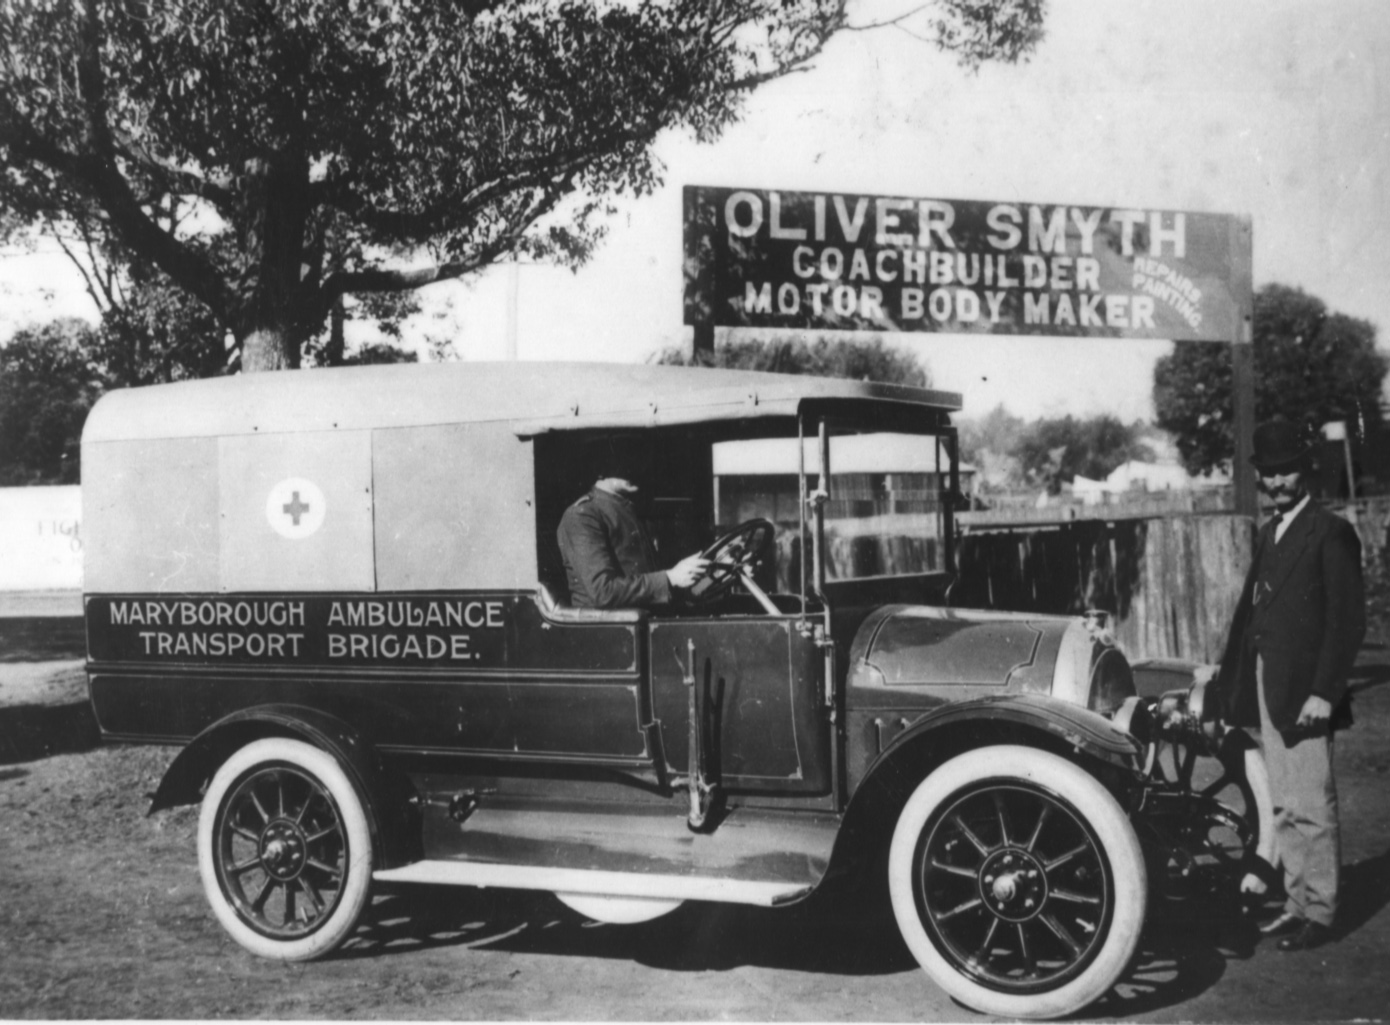 Tsa Has New Motto >> Fraser Coast Libraries Local History Blog: The Fraser Coast Ambulance Service - started in 1897 ...